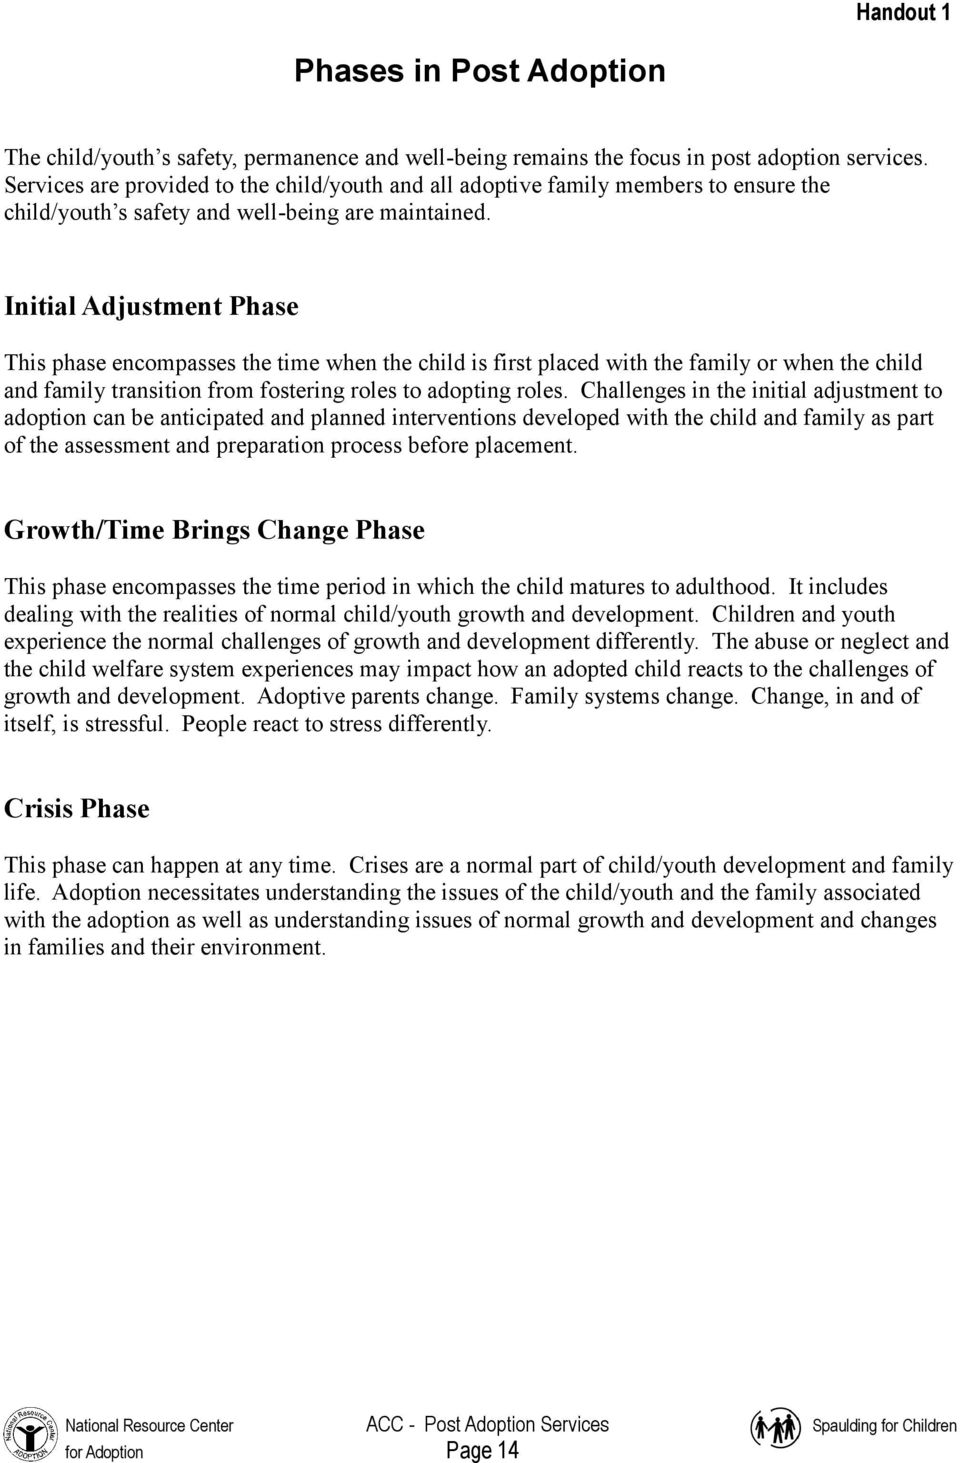 Initial Adjustment Phase This phase encompasses the time when the child is first placed with the family or when the child and family transition from fostering roles to adopting roles.